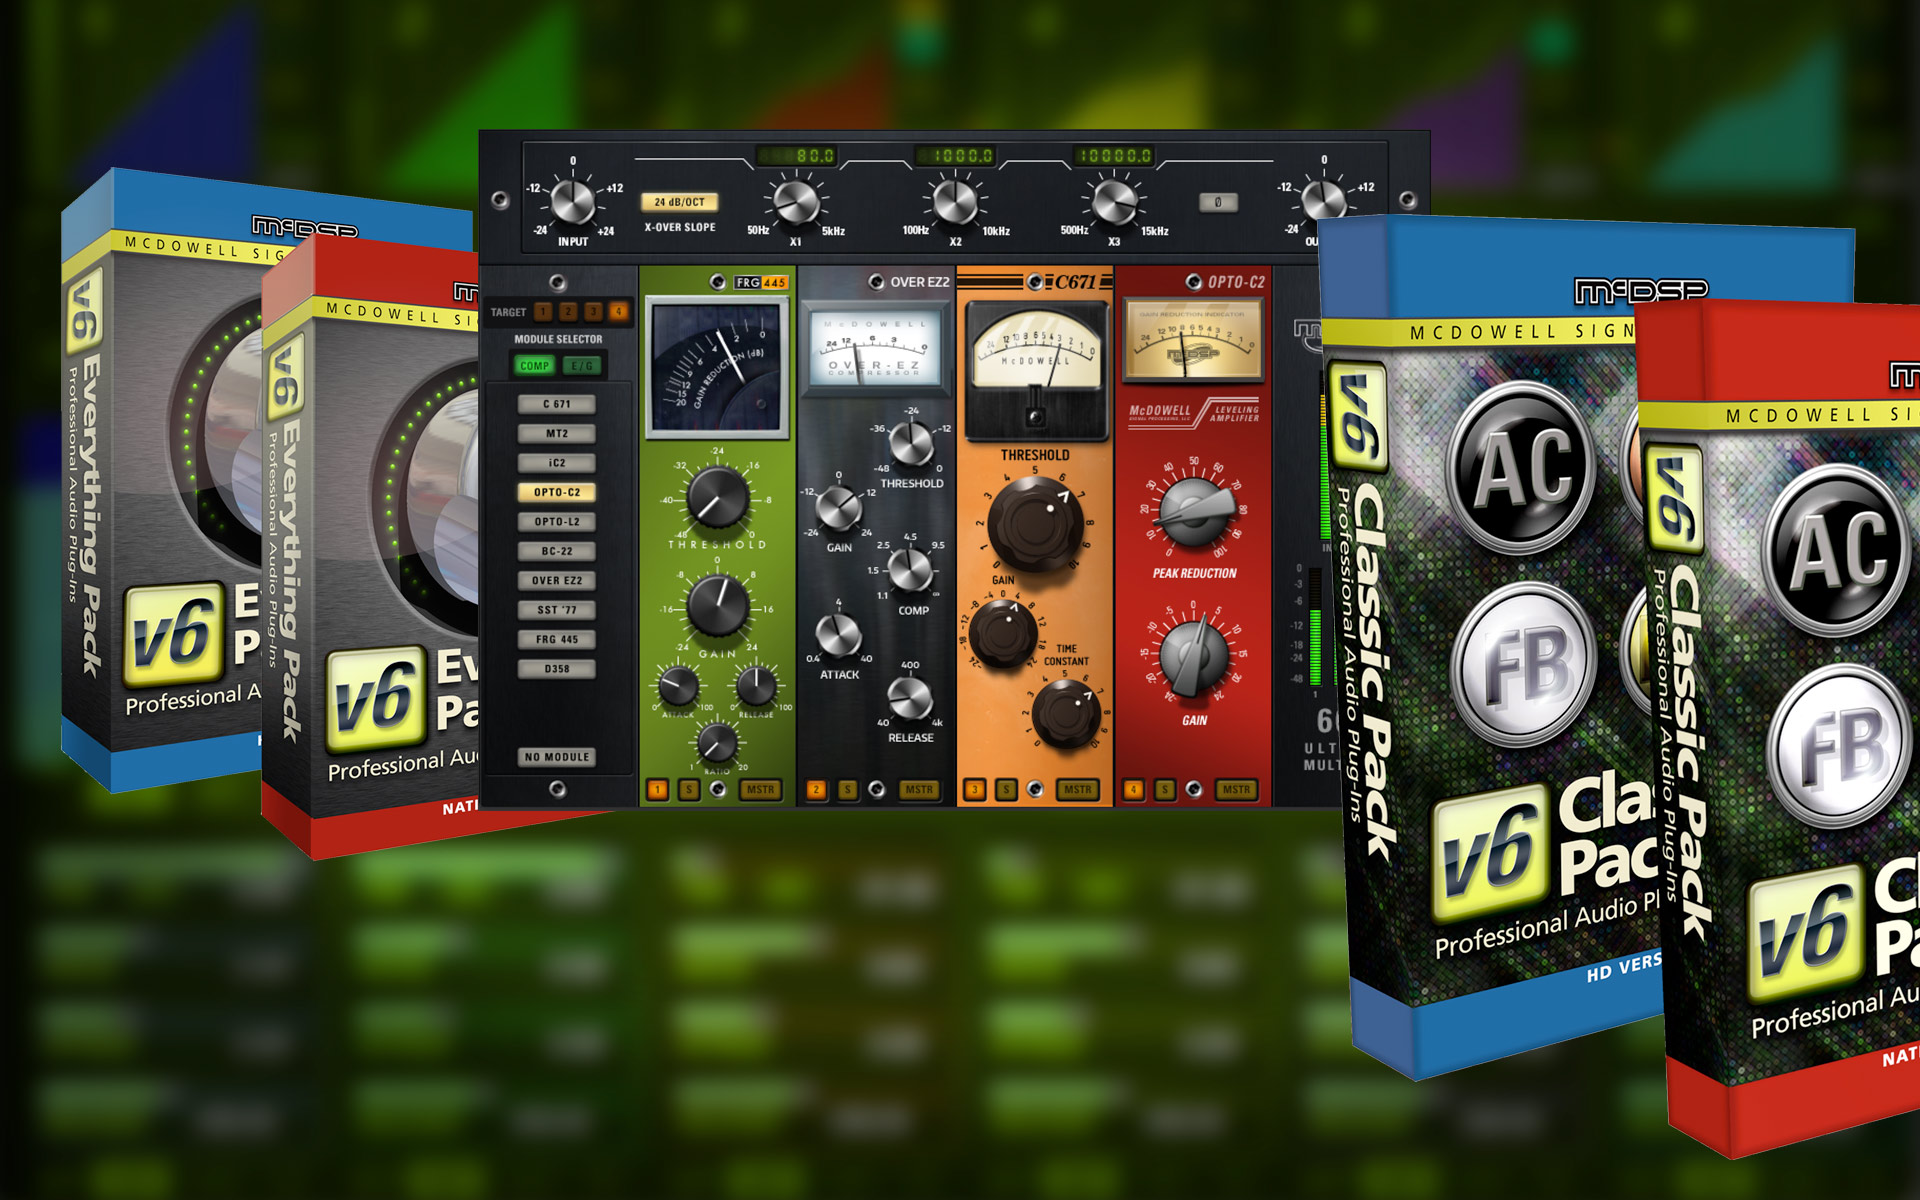 MCDSP - ESV Announce Partnership with McDSP | ESV Magazine